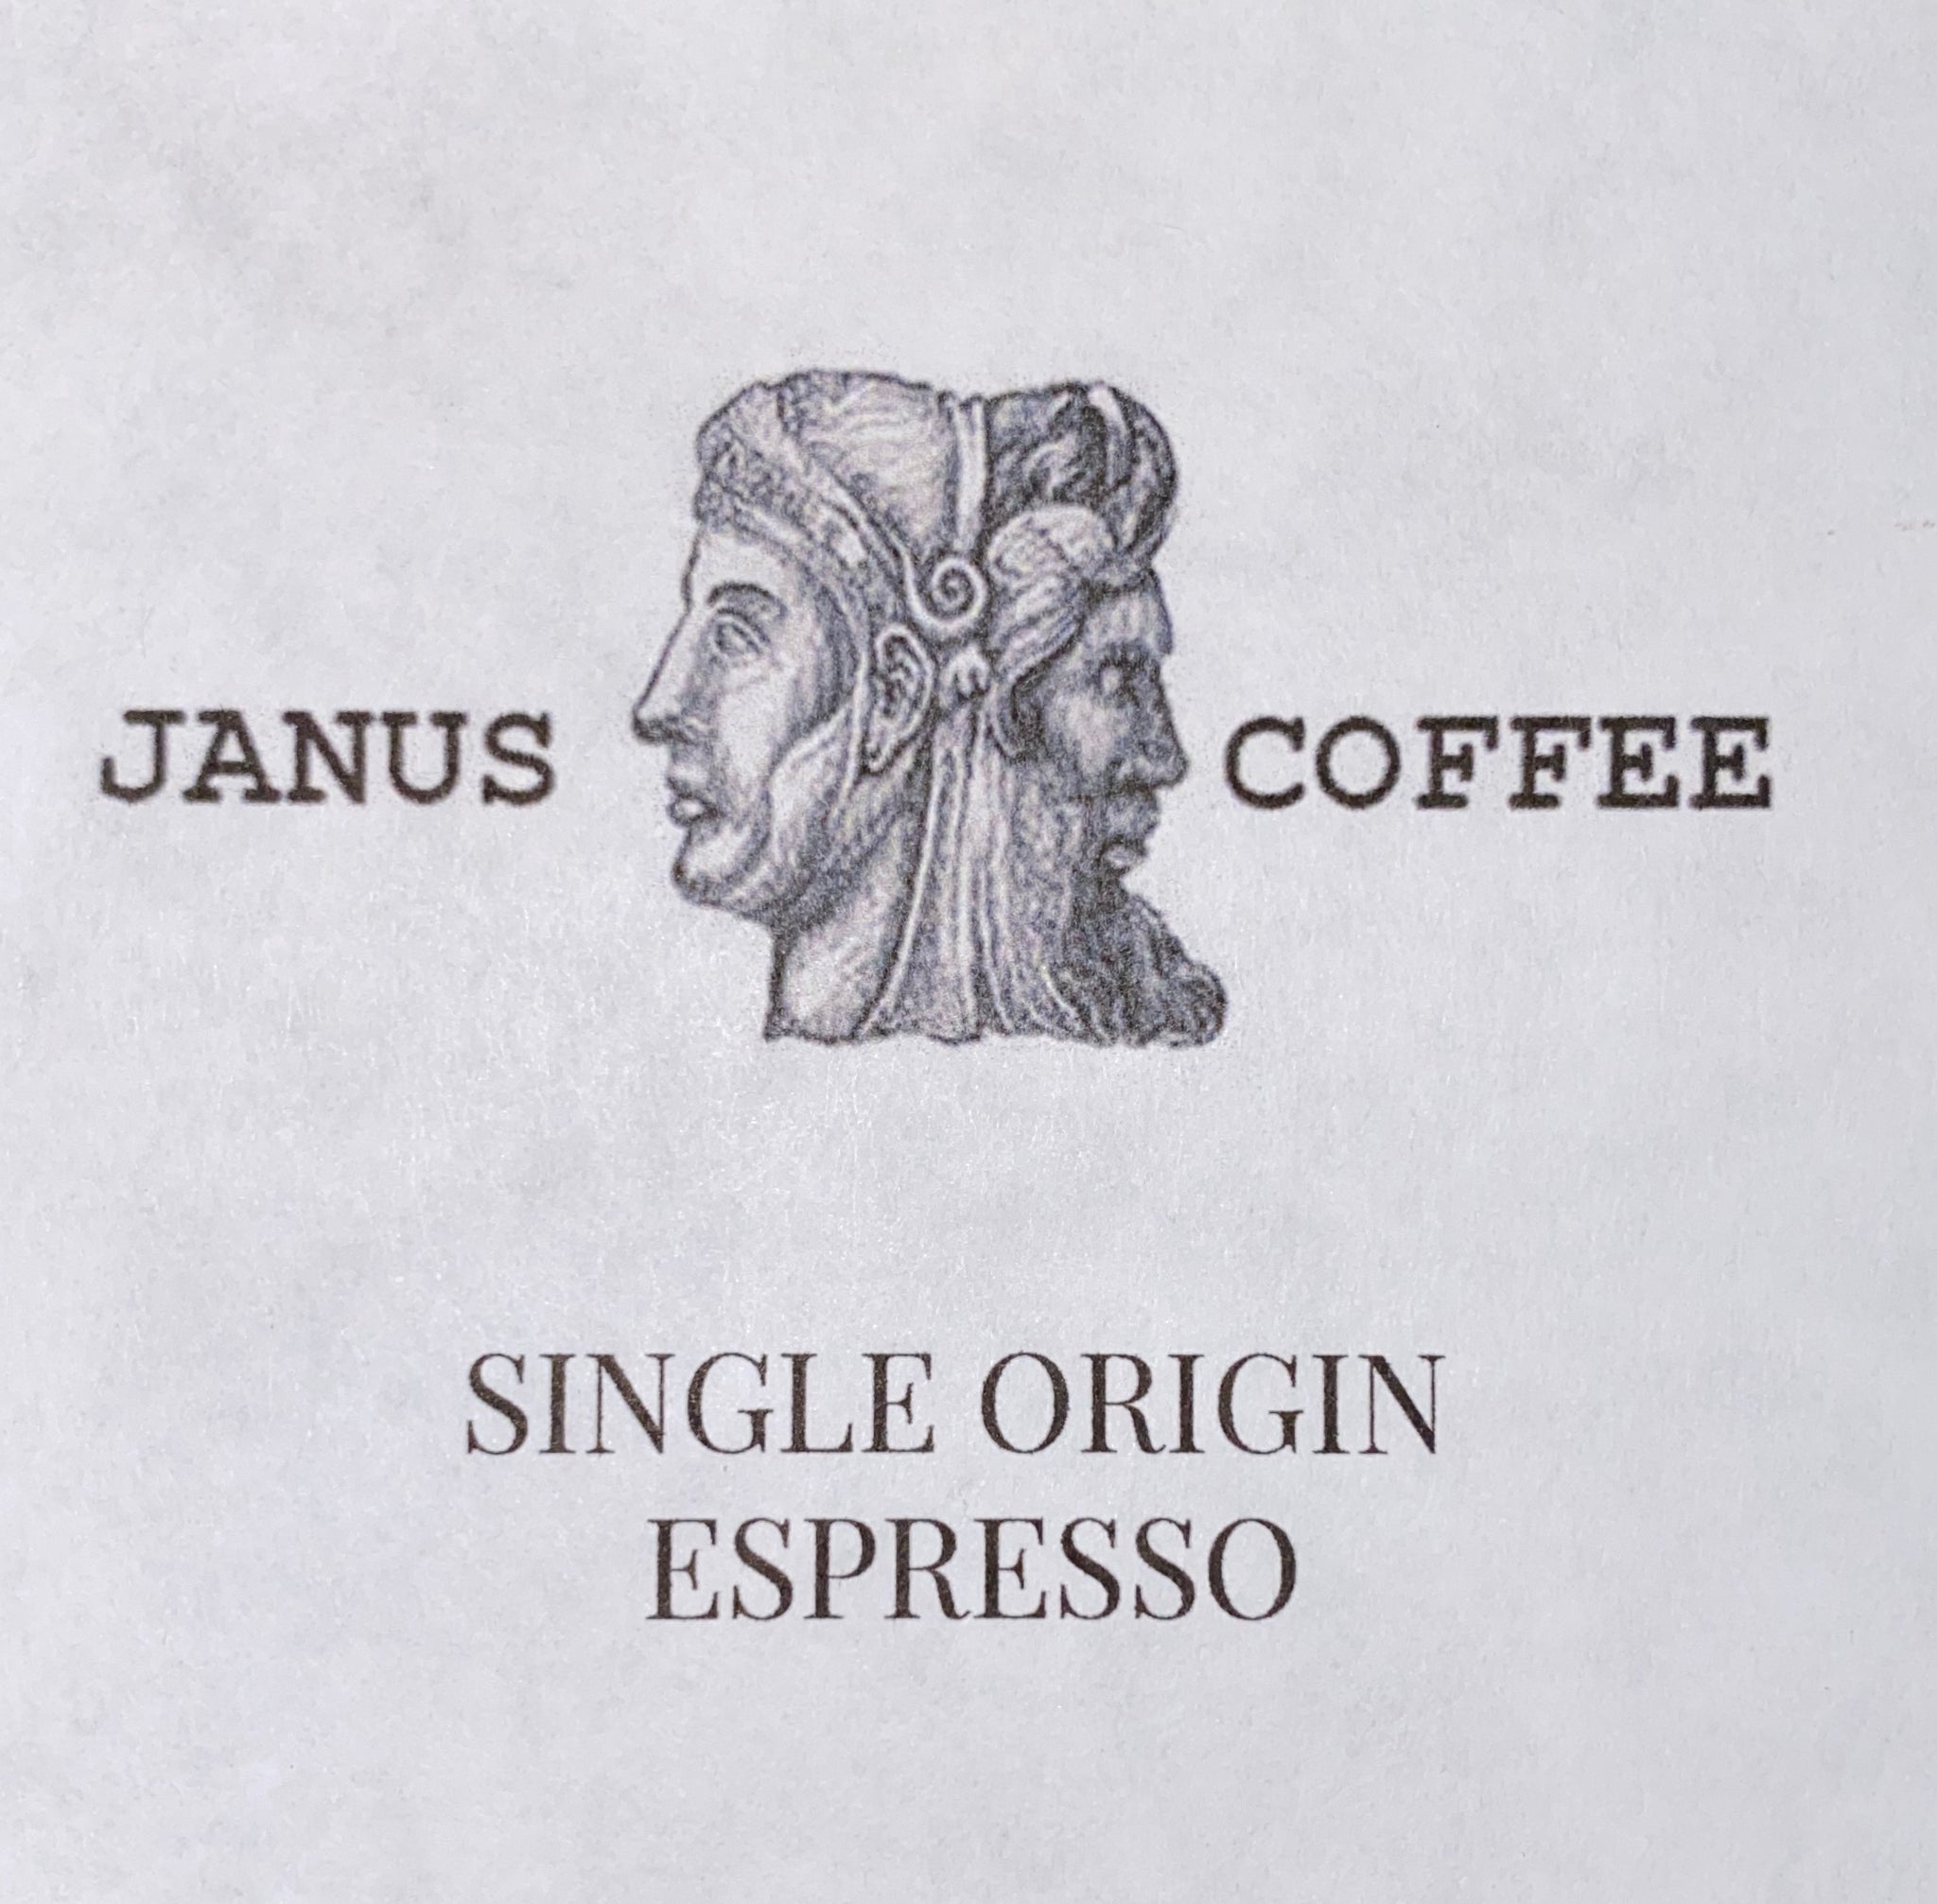 Janus Coffee House Single Origin Espresso